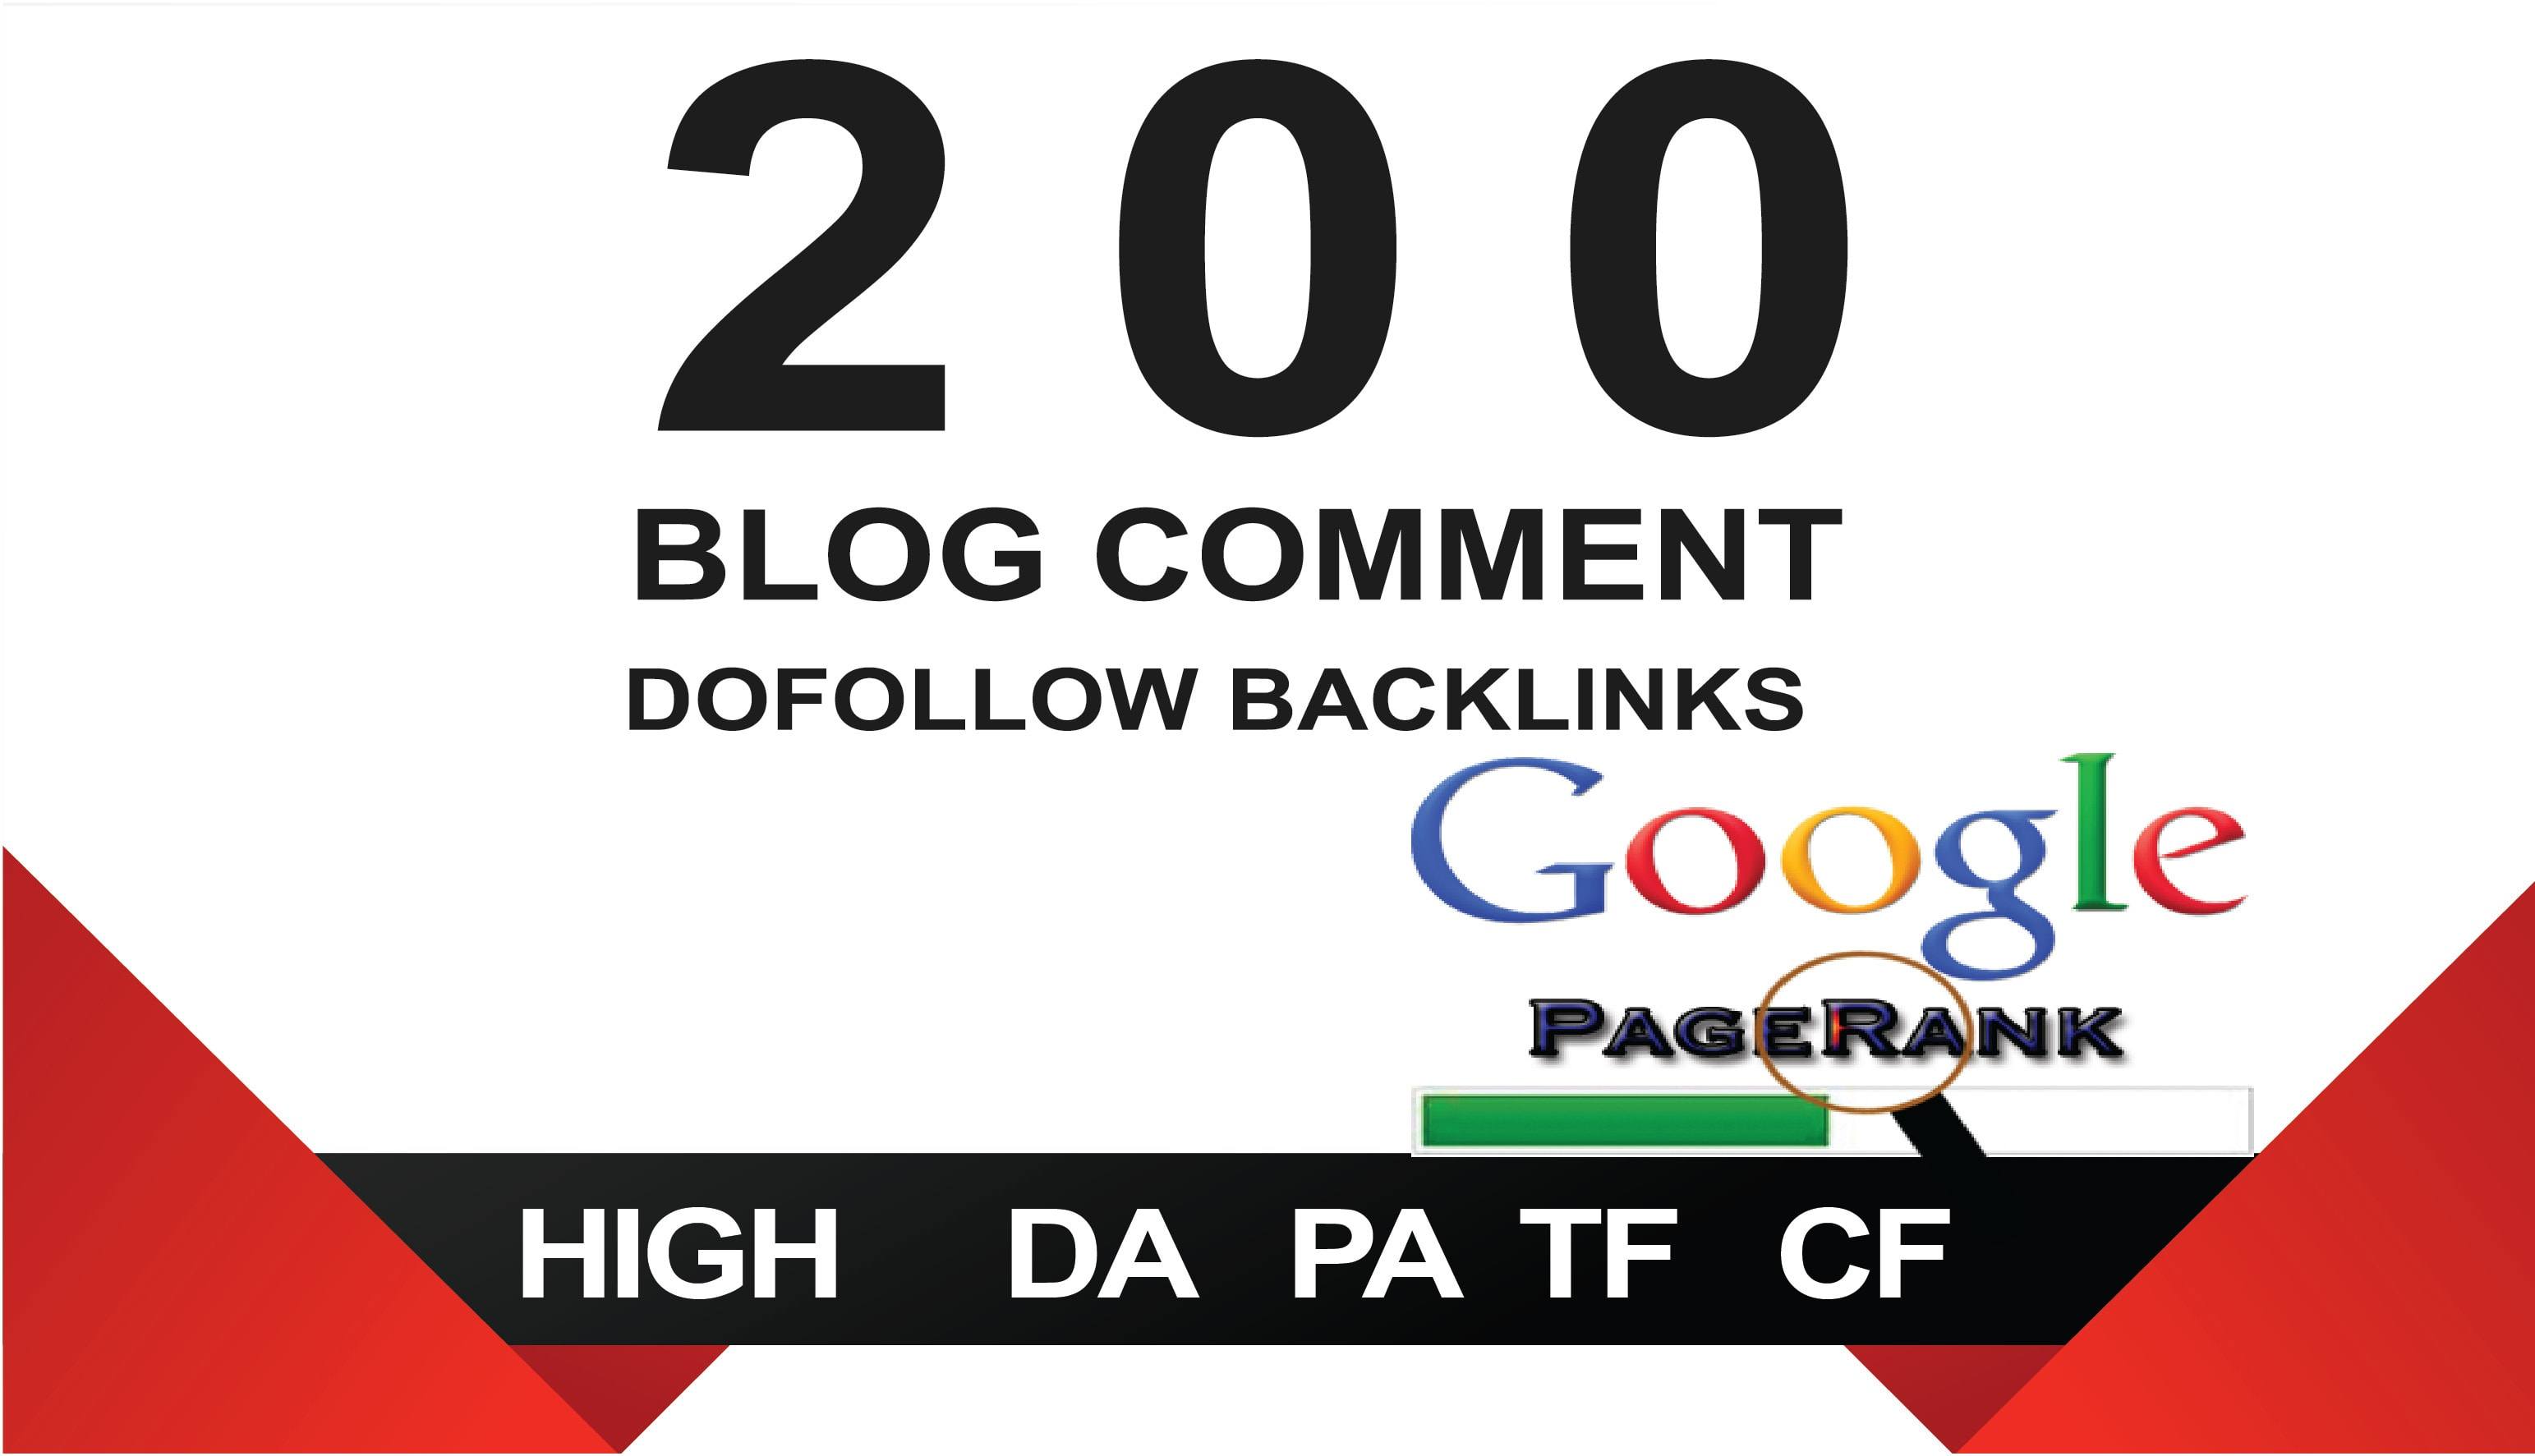 I will create 200 unique dofollow blog comment backlinks